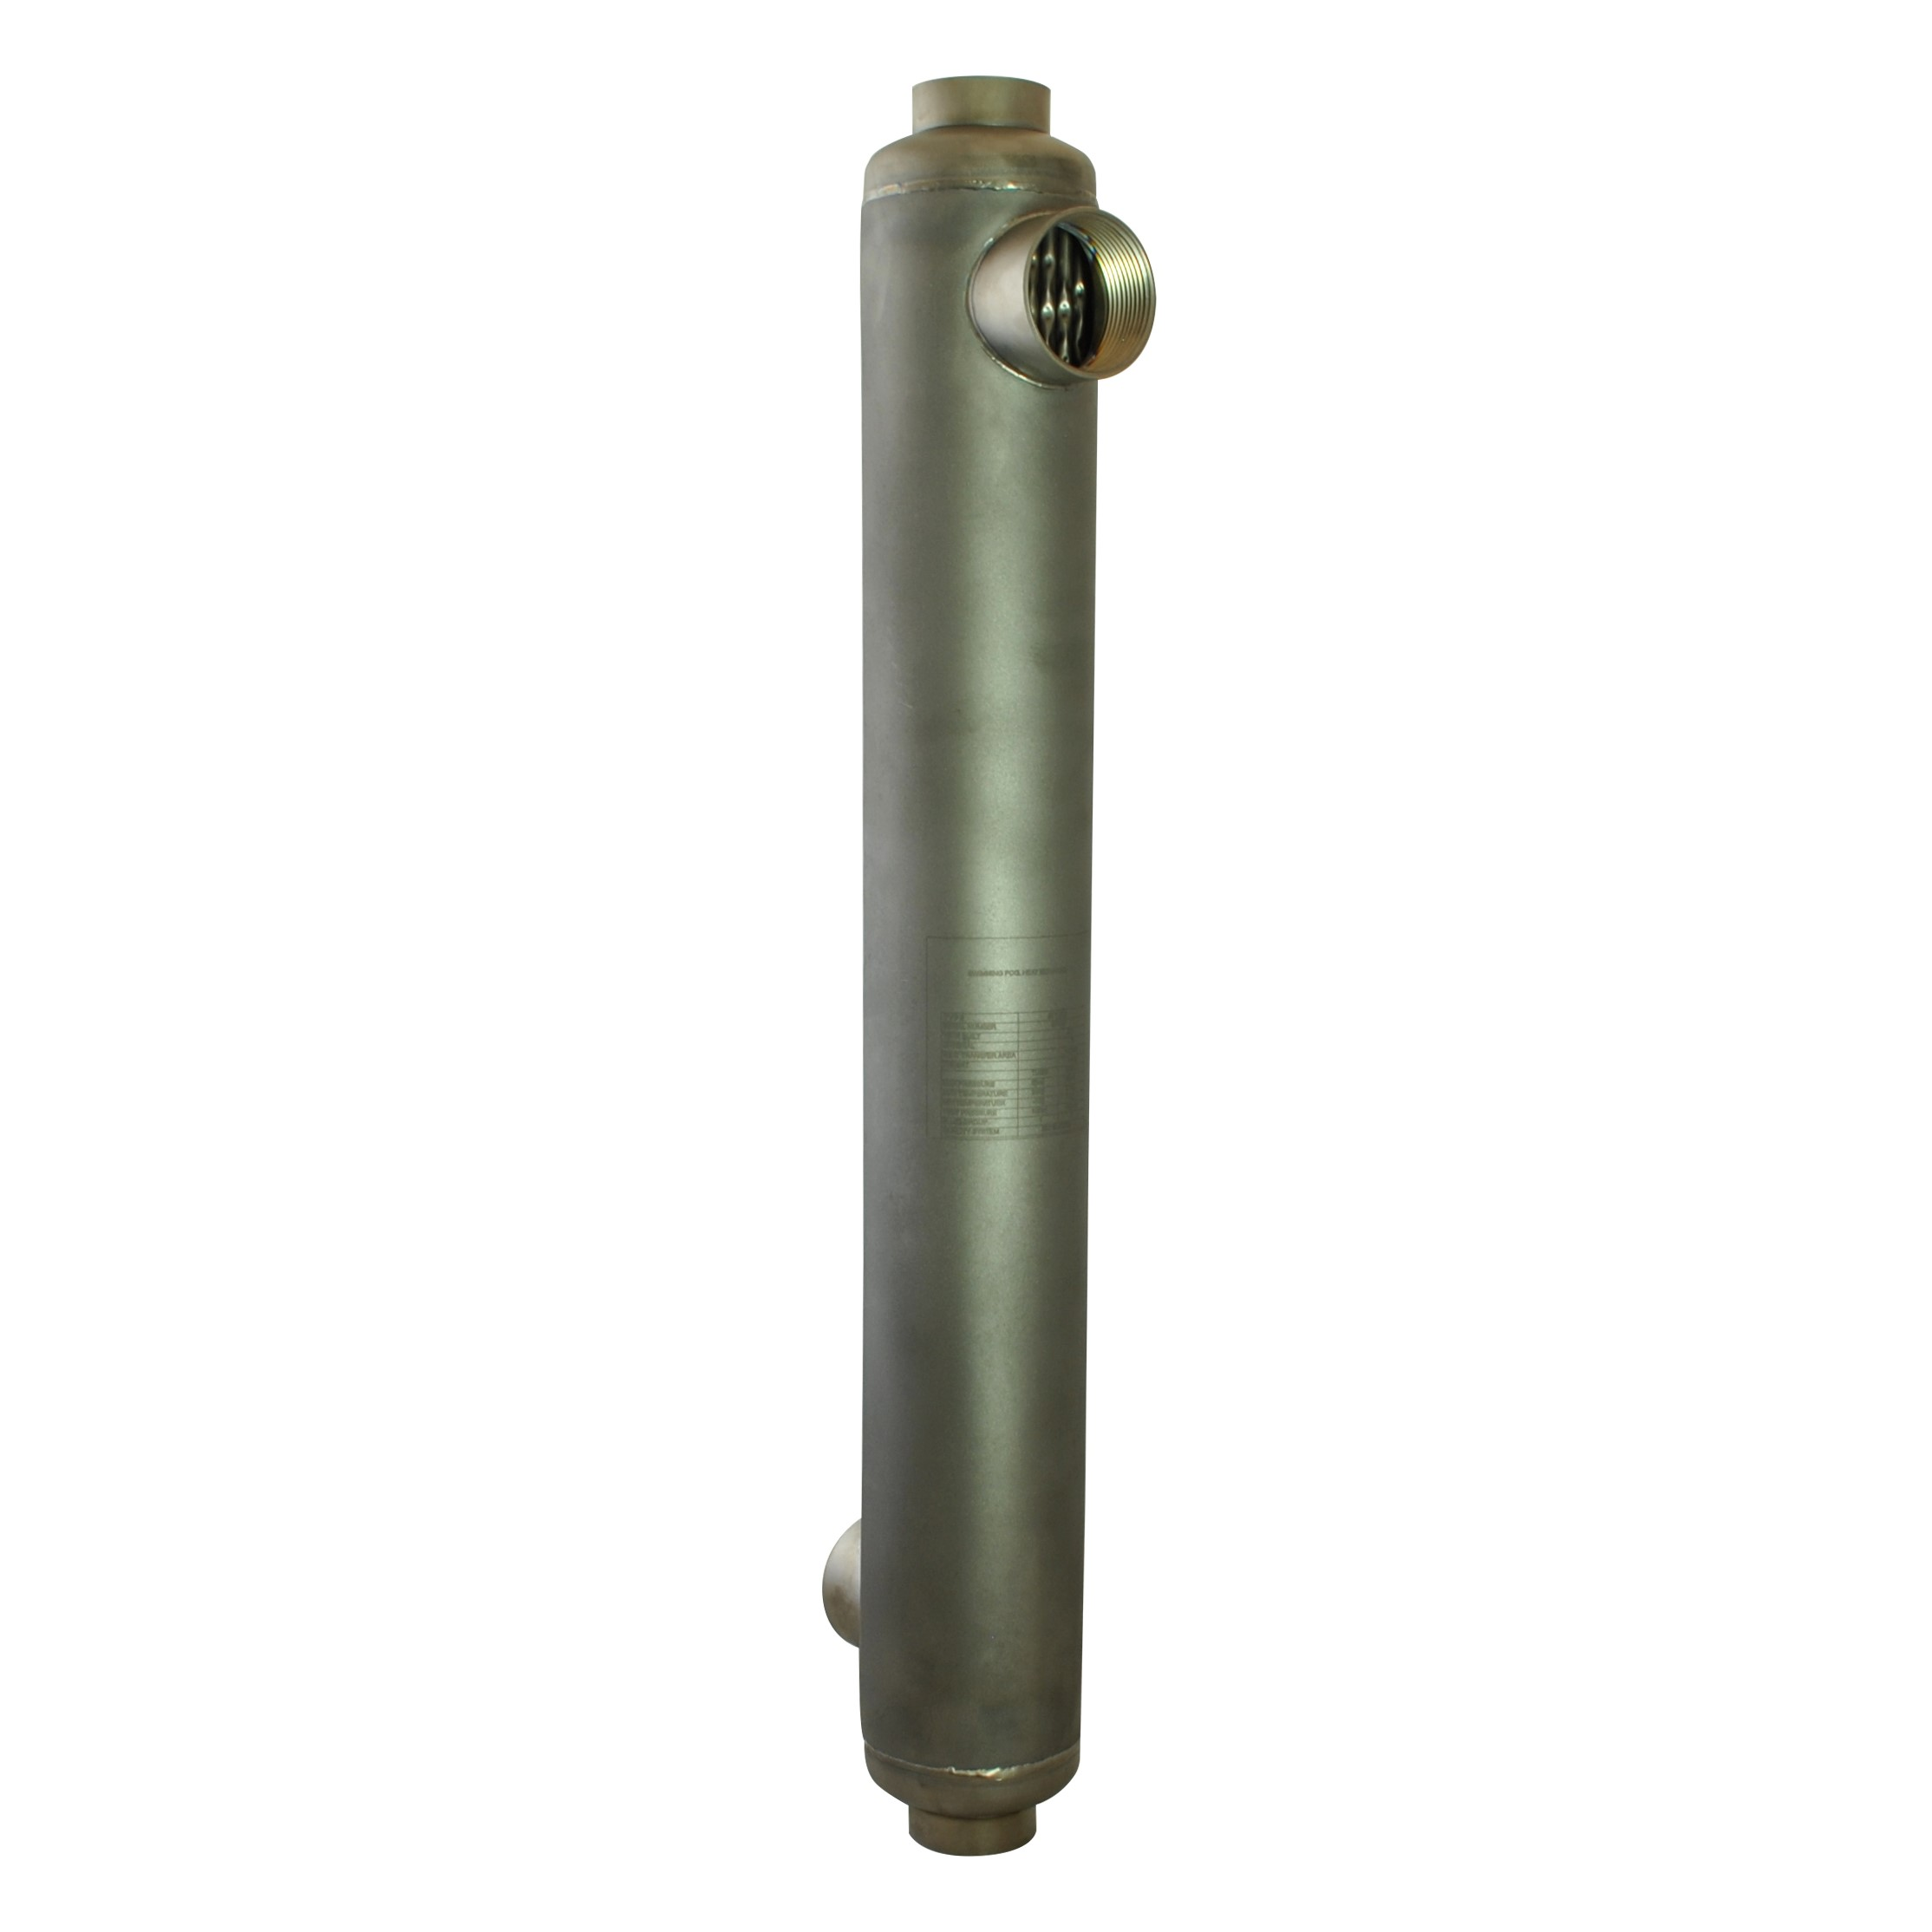 Bluepool ST175T heat exchanger